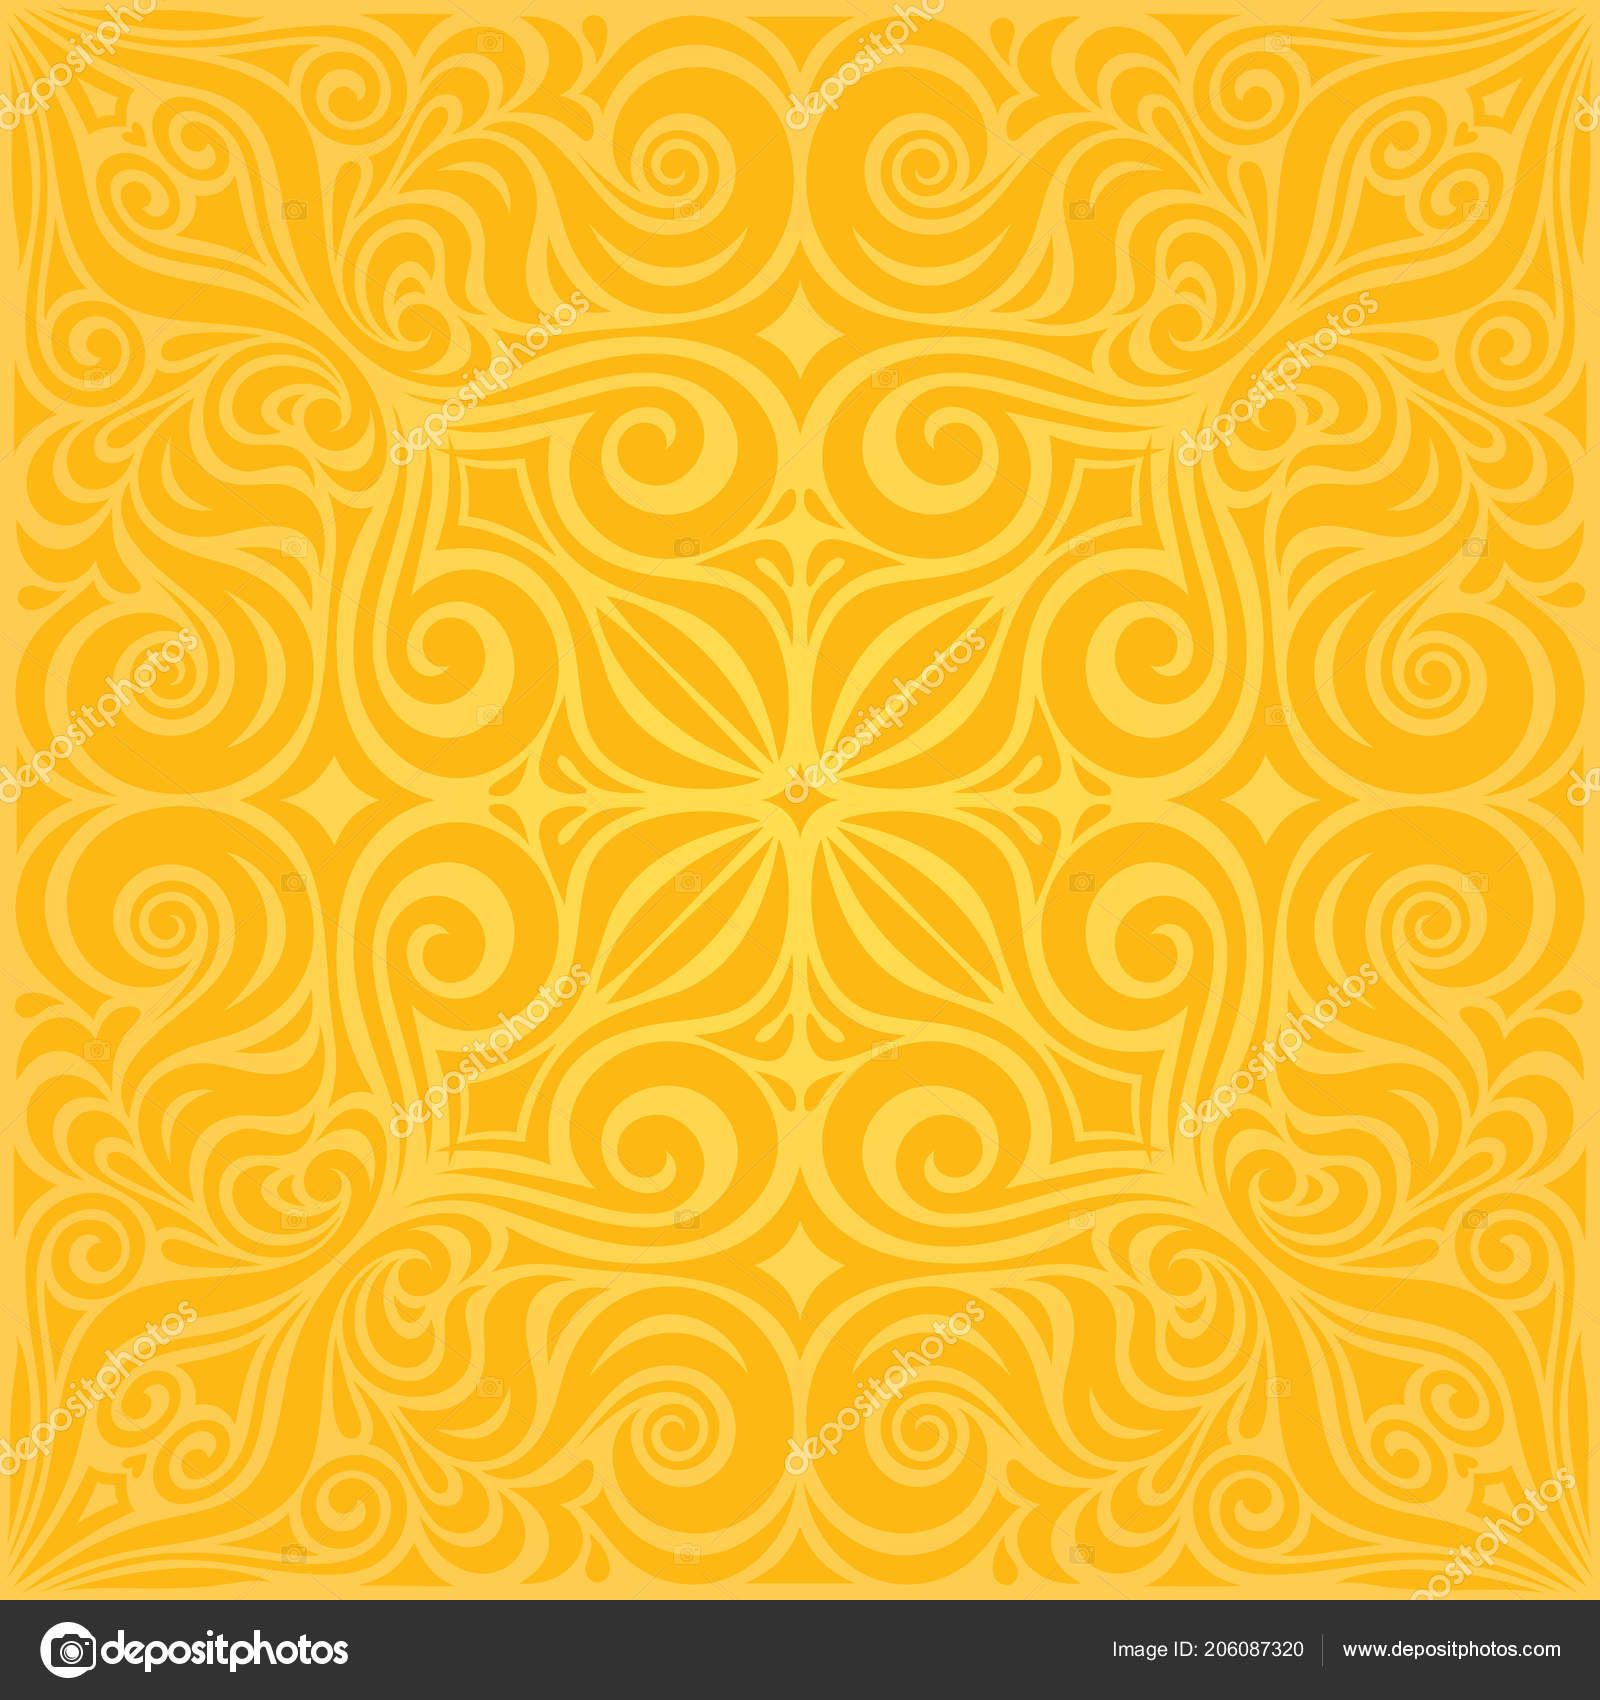 depositphotos 206087320 stock illustration flowers yellow colorful floral wallpaper